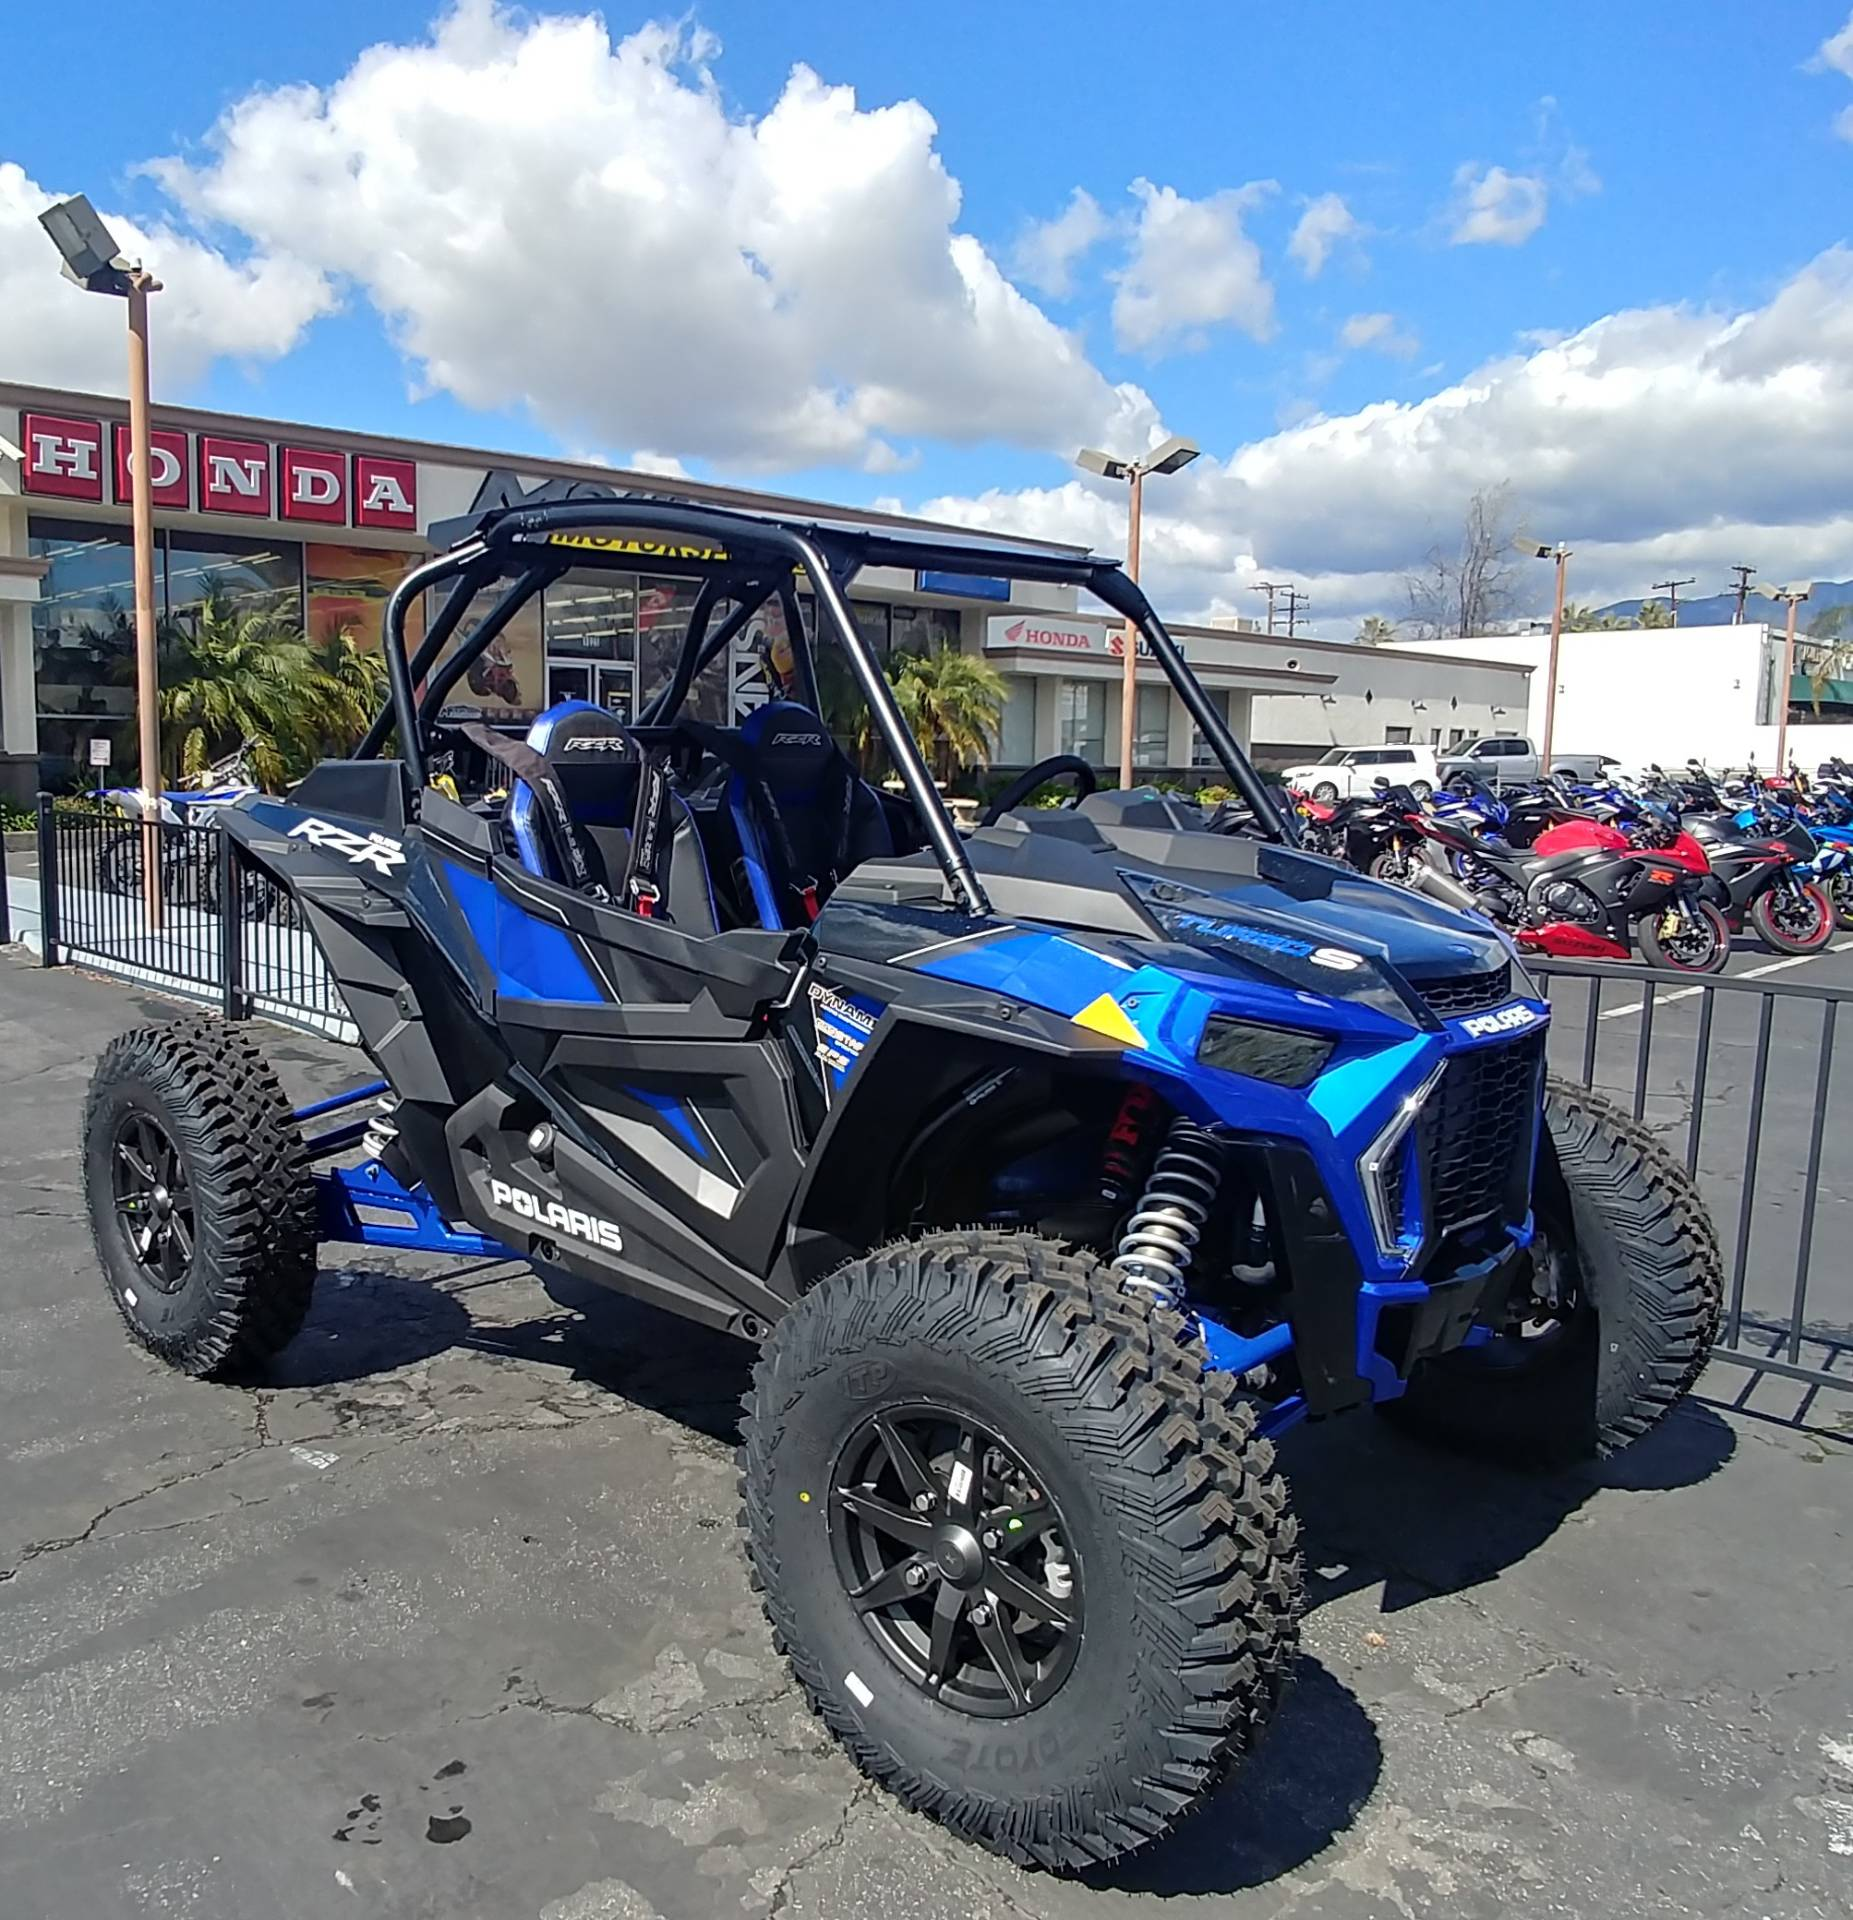 2019 Polaris RZR XP Turbo S in Ontario, California - Photo 5